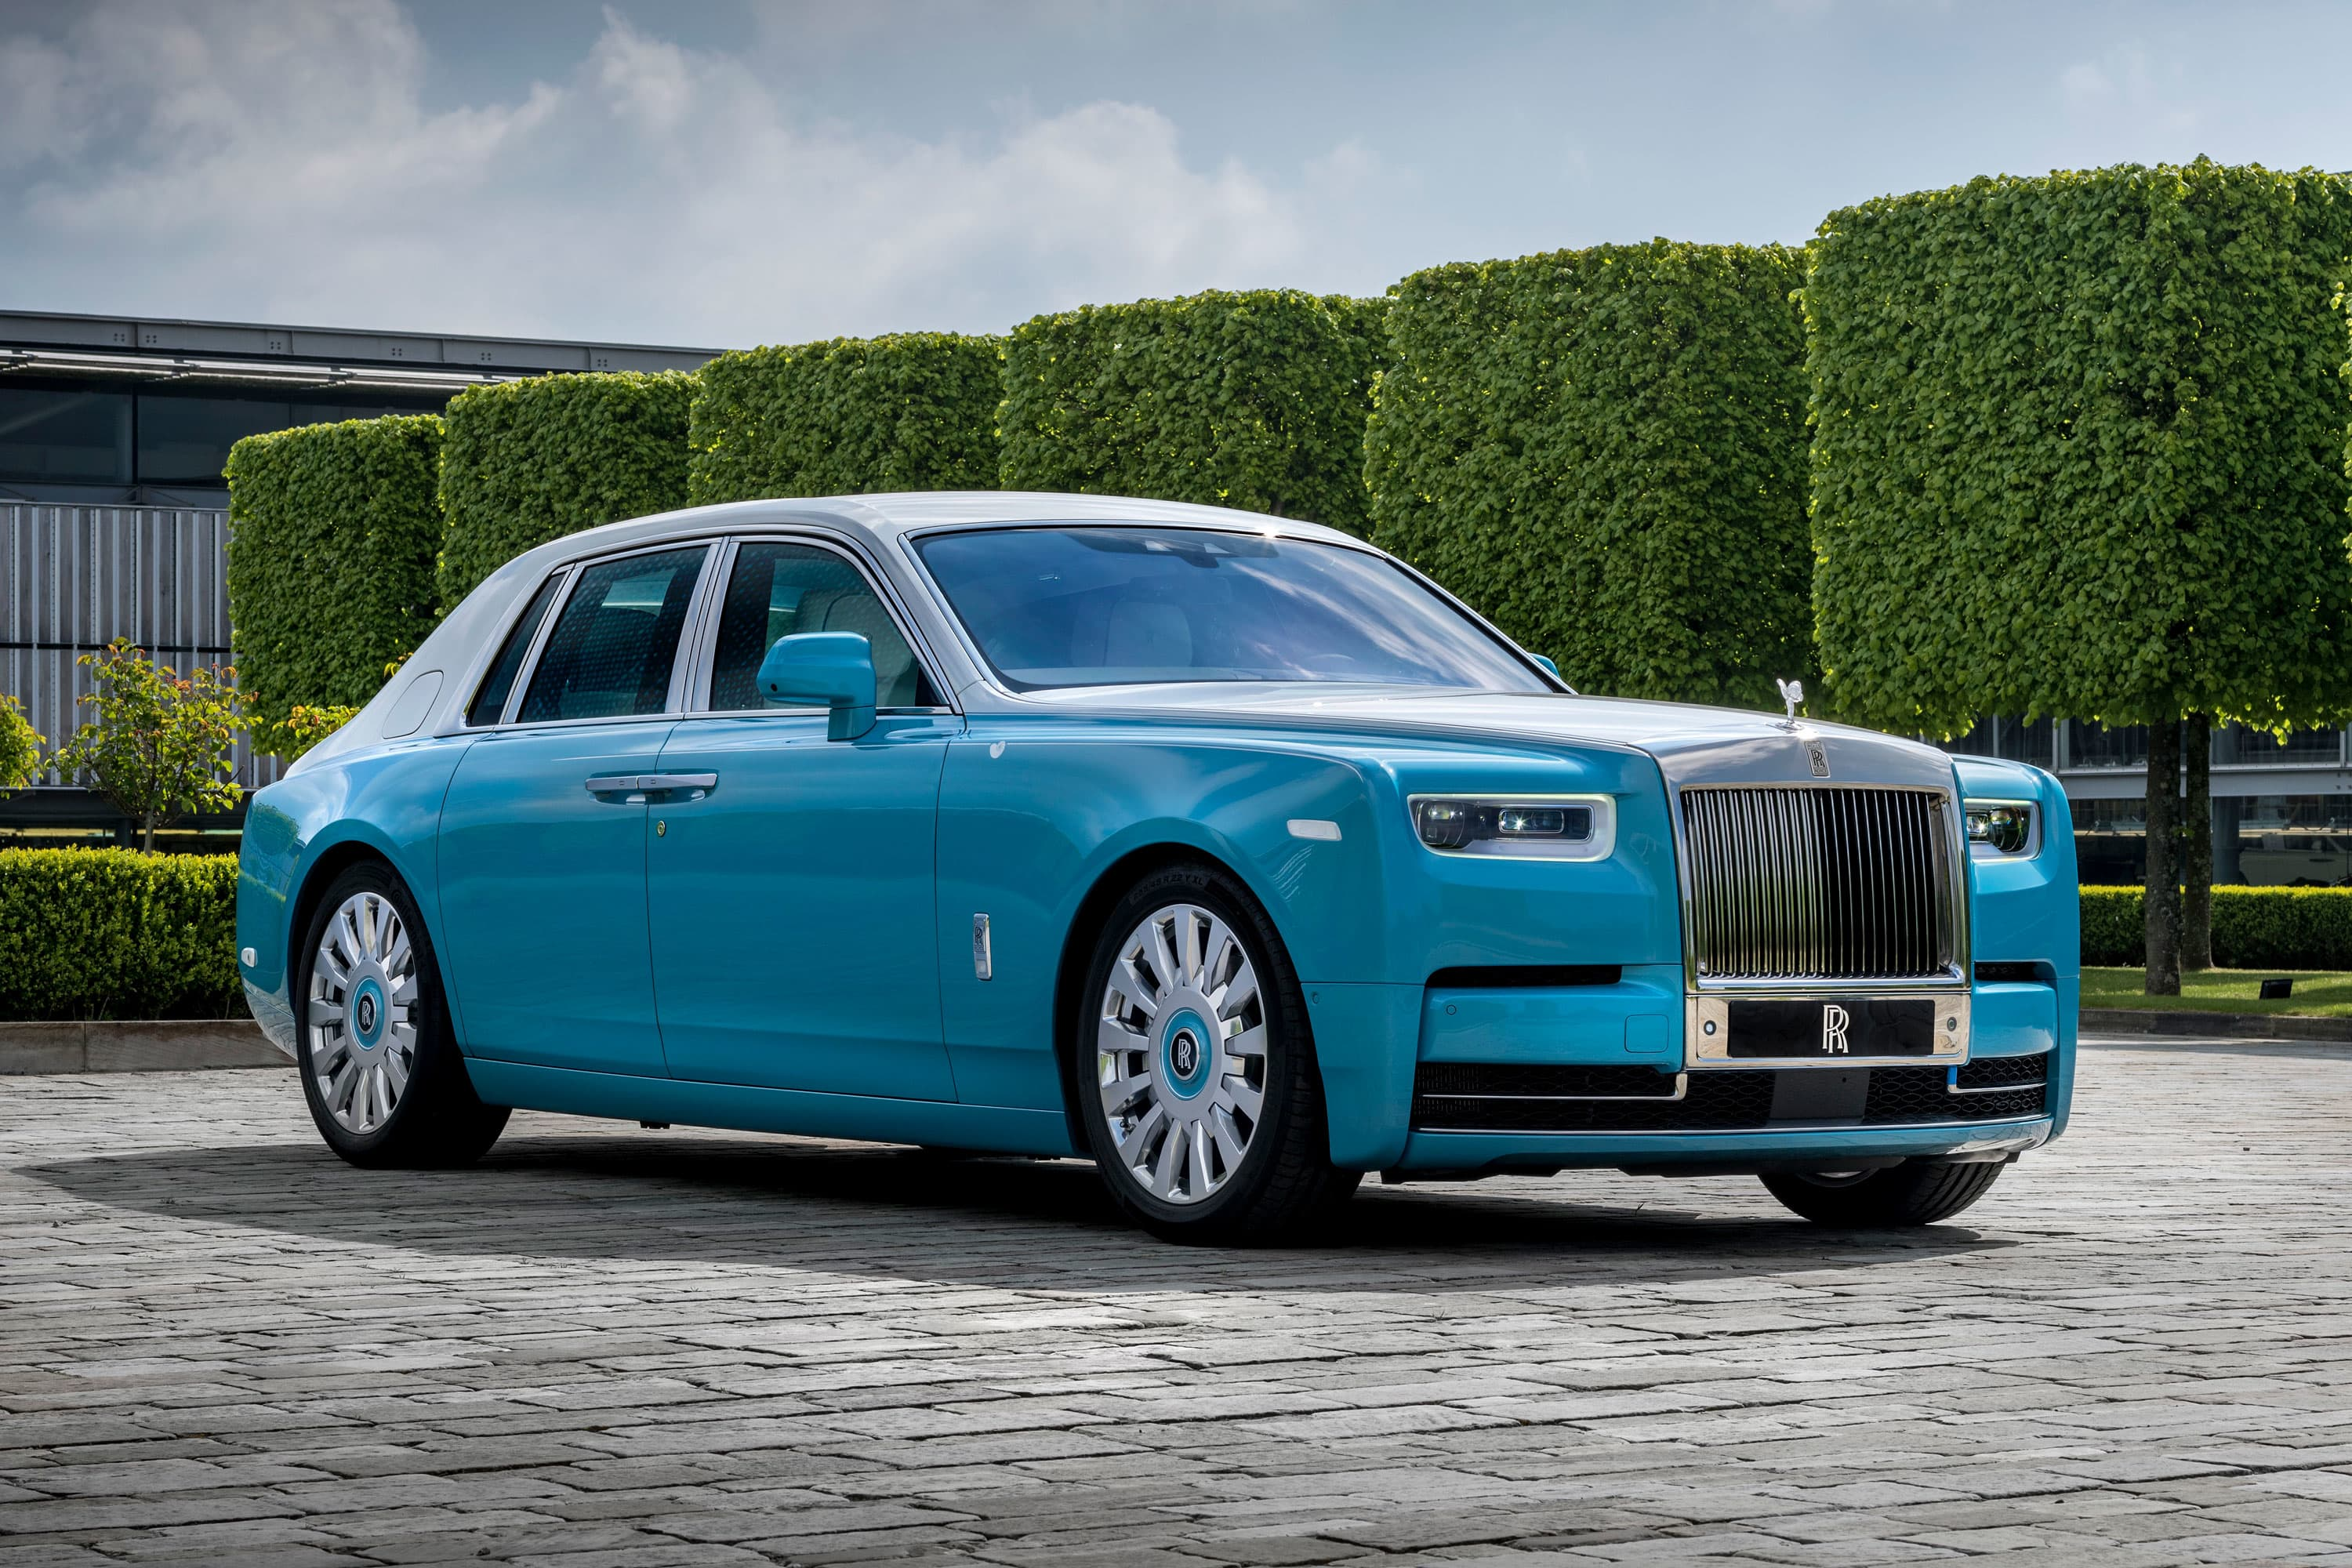 Rolls-Royce hits new sales record in the first quarter as the wealthy demand luxury cars